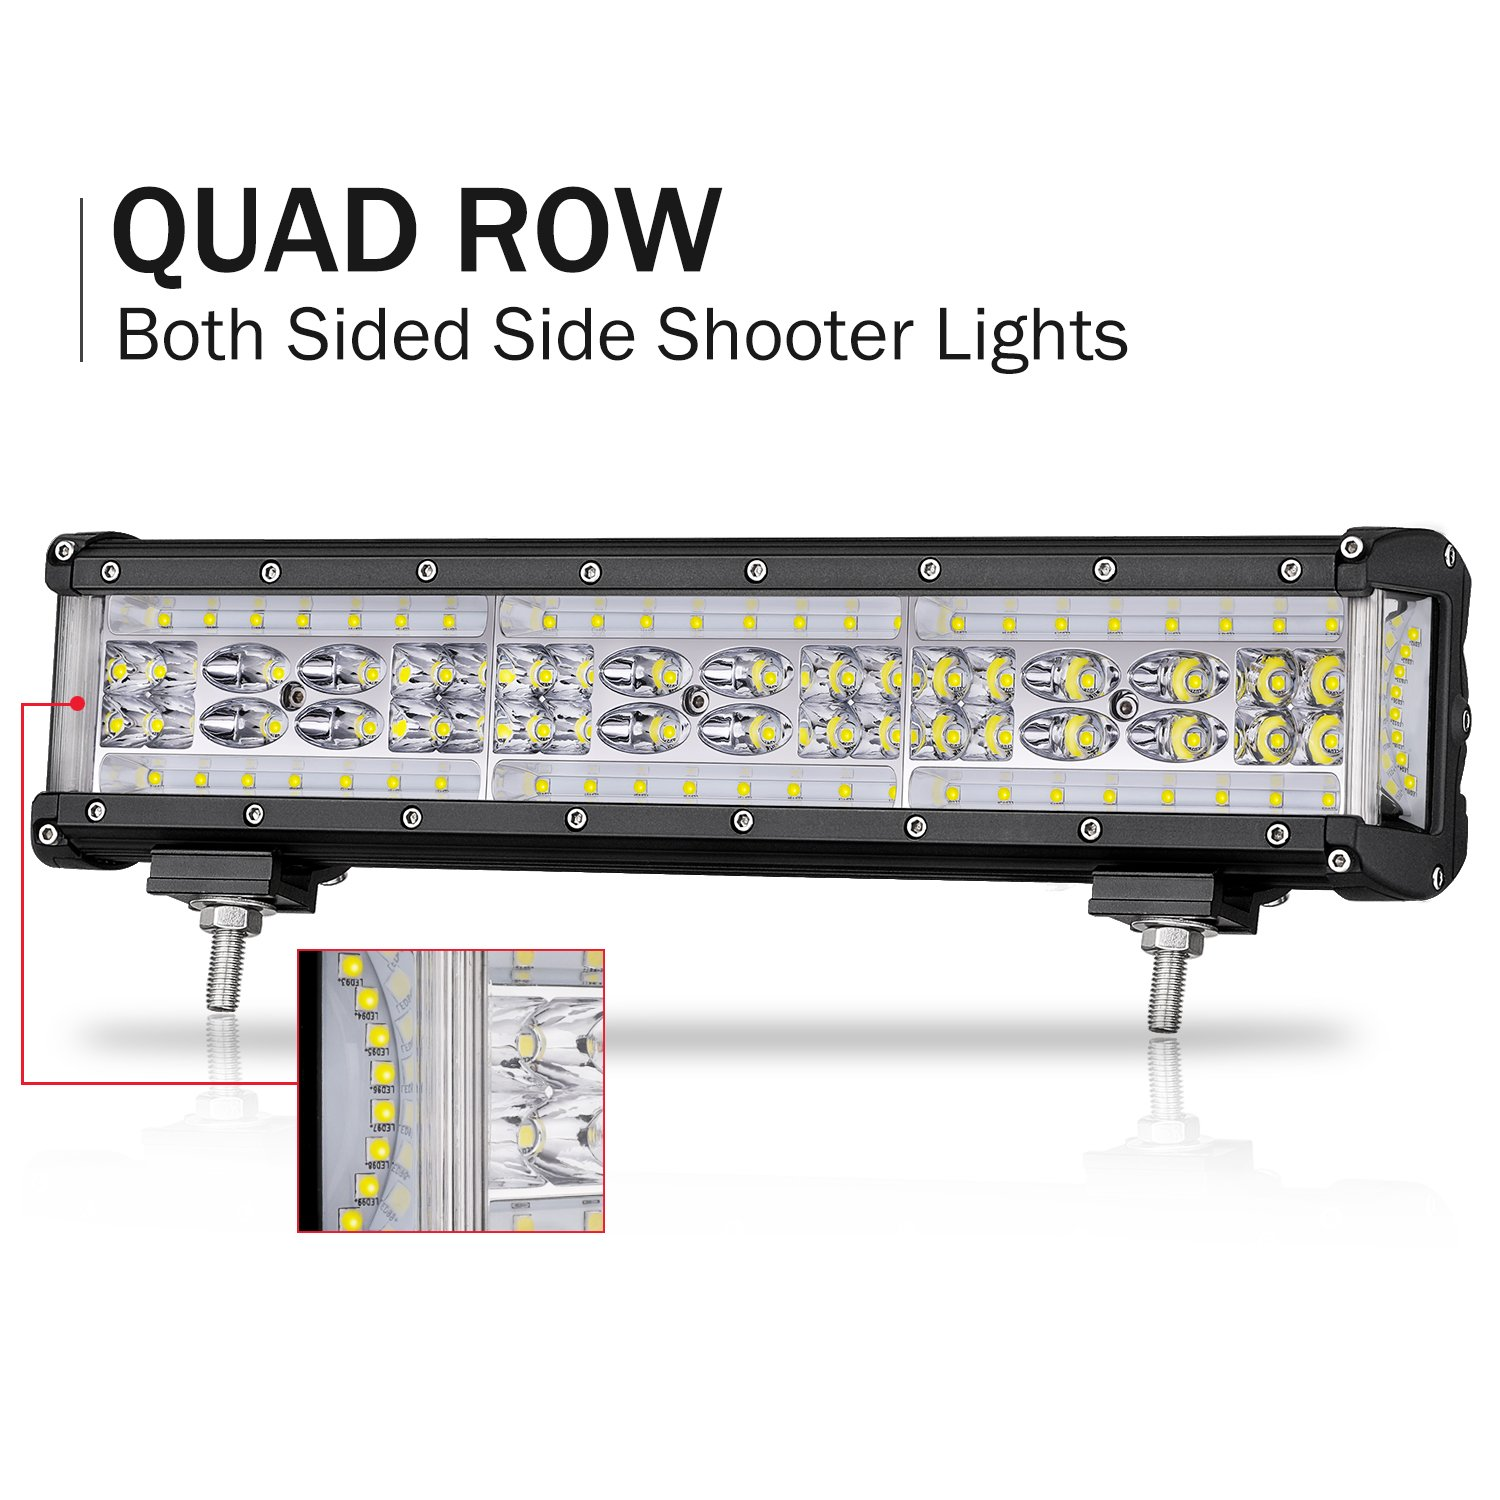 Top 8 Led Lights For Sale 2018 Smart Home Devices White Flood Lamp Circuit B2b Electronic Components 4 Review Light Bar Offroadtown 12 Inch 200w Quad Row Side Shooter Cree Spot Combo Beam Driving Fog Work